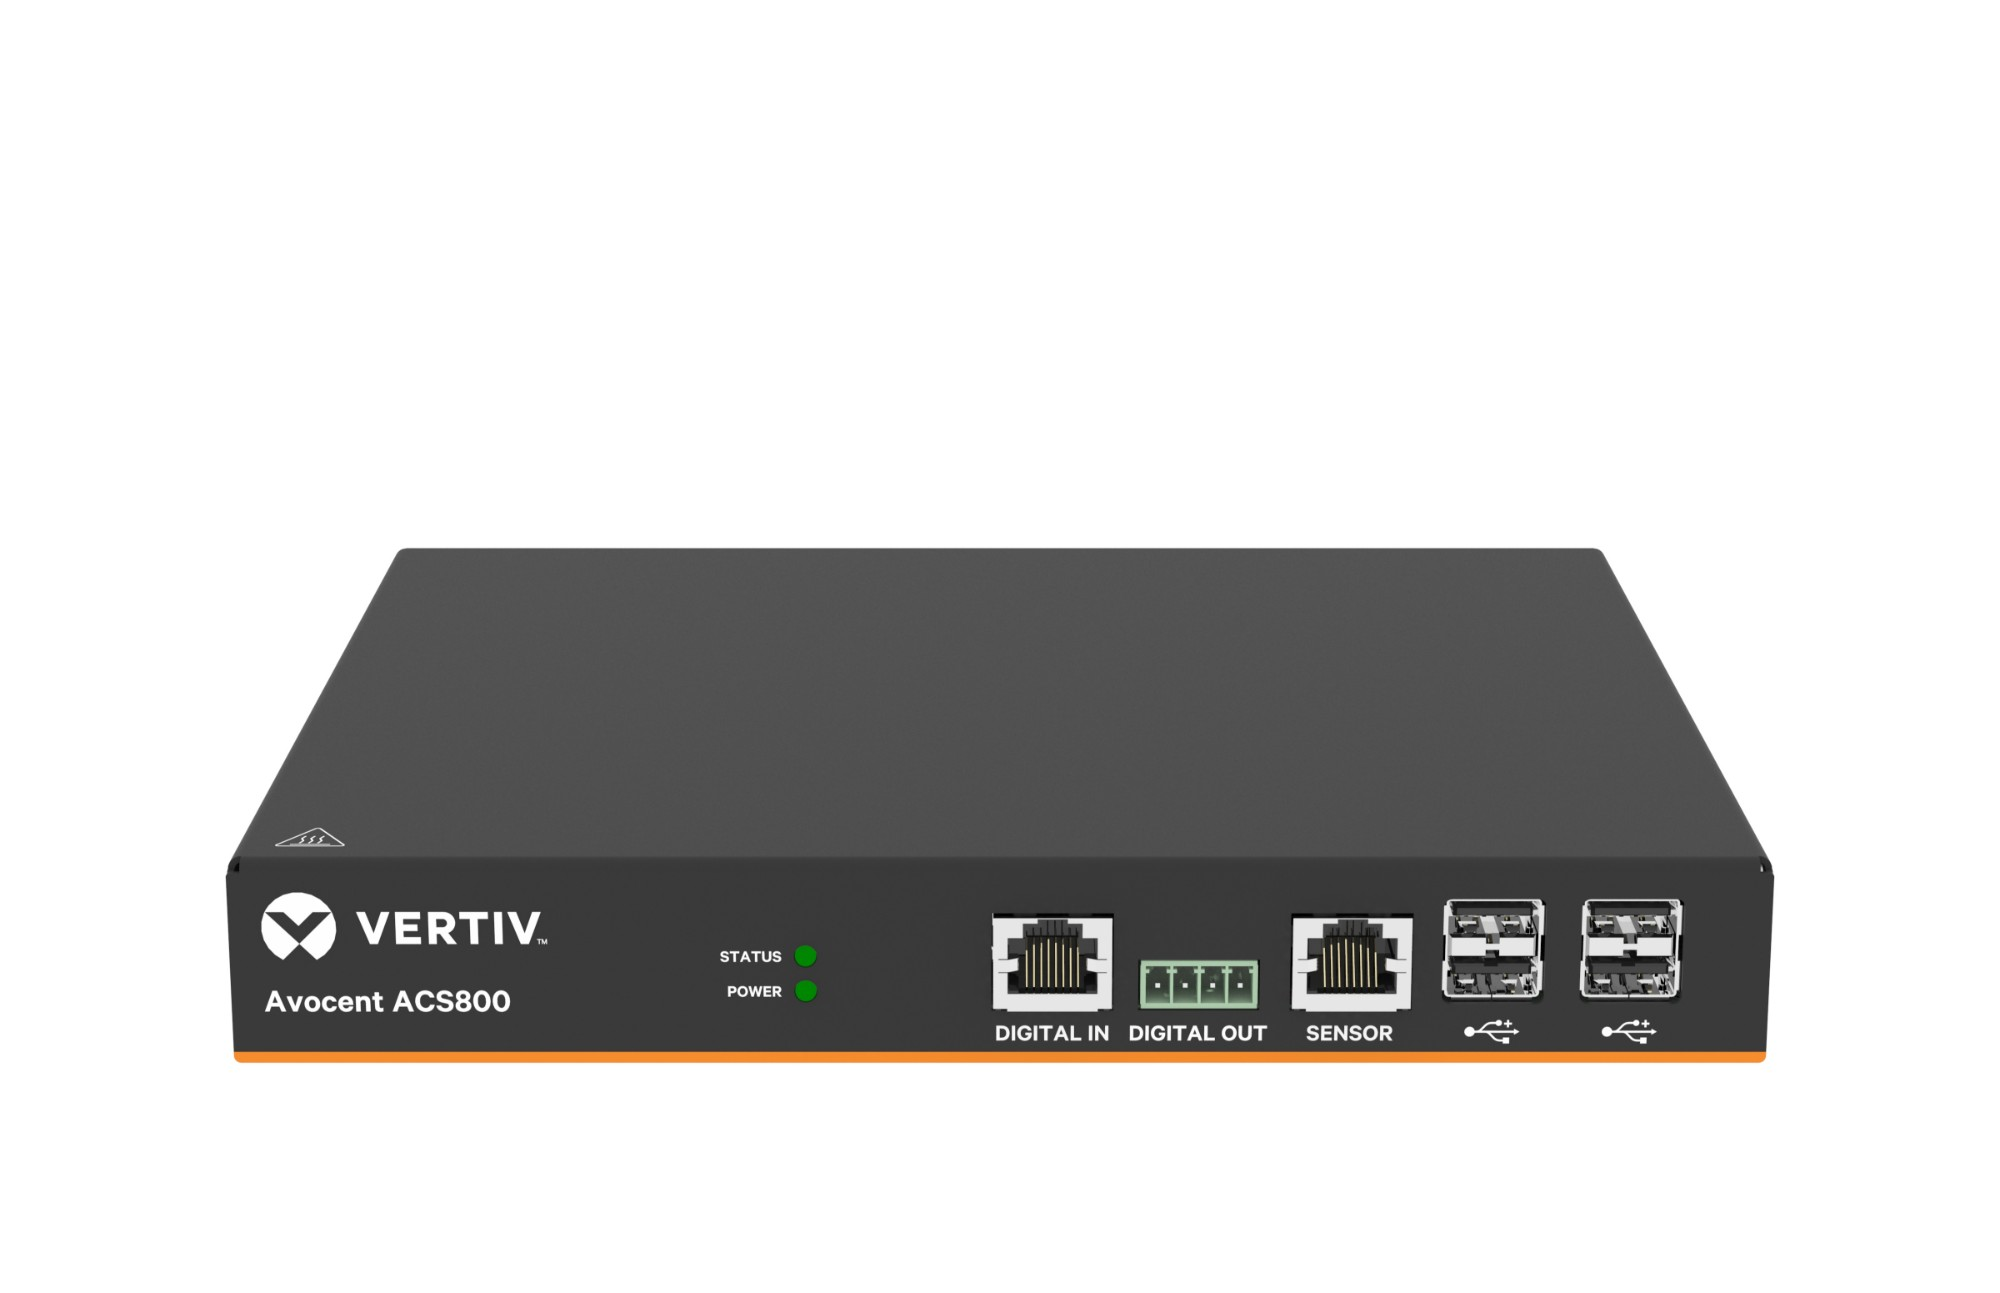 Vertiv Avocent 8-Port ACS800 Serial Console with external AC/DC Power Brick - Jumper cord: Plug C14